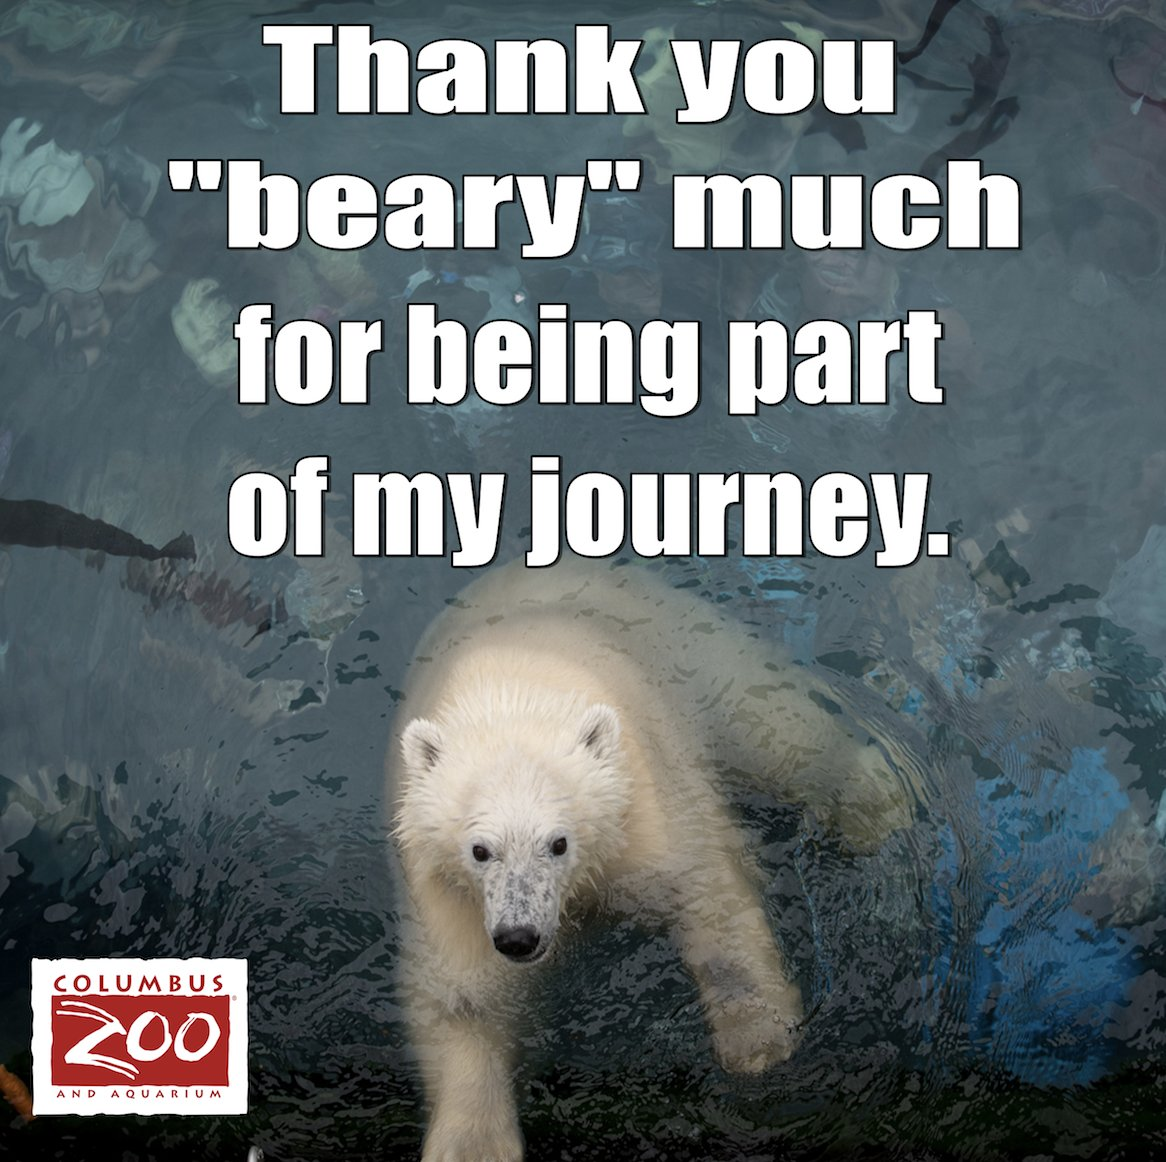 Columbus Zoo On Twitter Celebrate Your Love For Nora And Make A